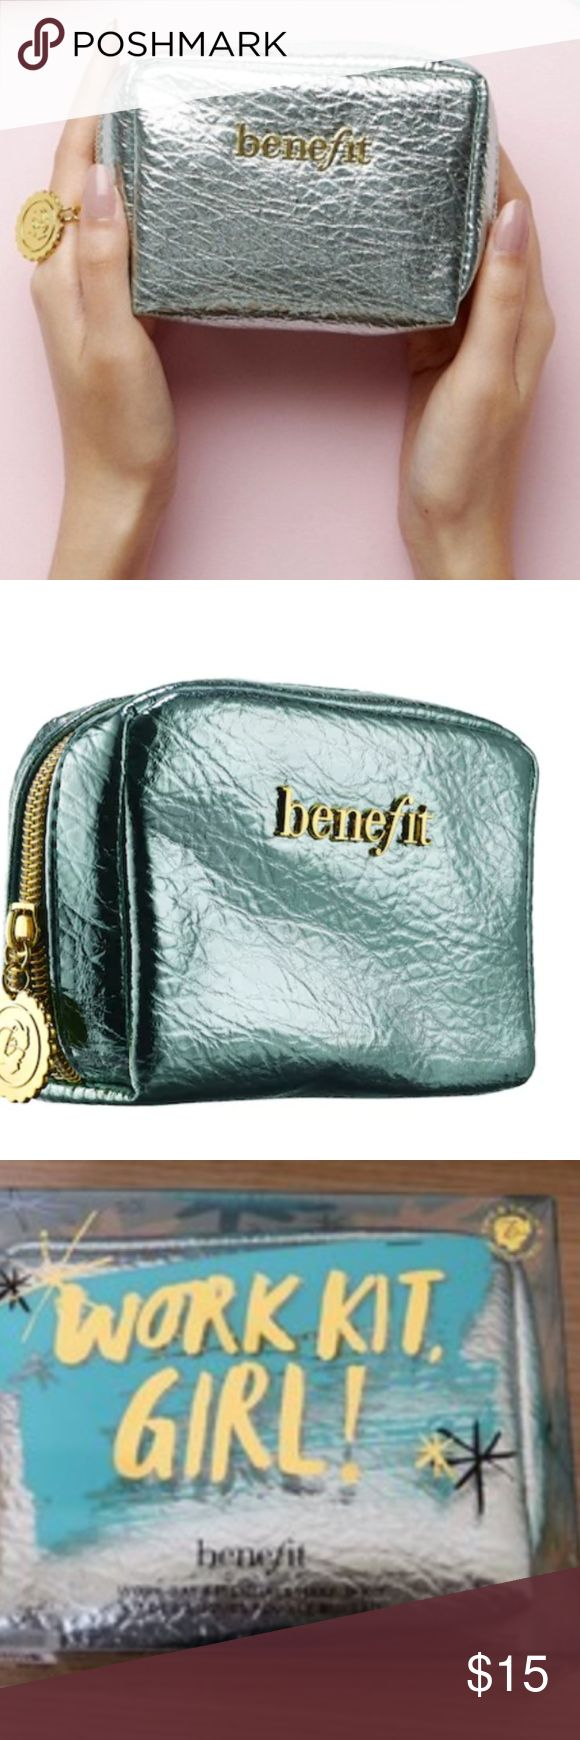 BENEFIT COSMETICS Work Kit, Girl! bag/pouch unused Benefit Cosmetics collectible makeup bag  Metallic blue-green color with gold zipper.  No longer selling this kit on Sephora website (it's sold out)  Original kit was $32  Great little pouch/bag/jewelry purse etc. Benefit Bags Cosmetic Bags & Cases